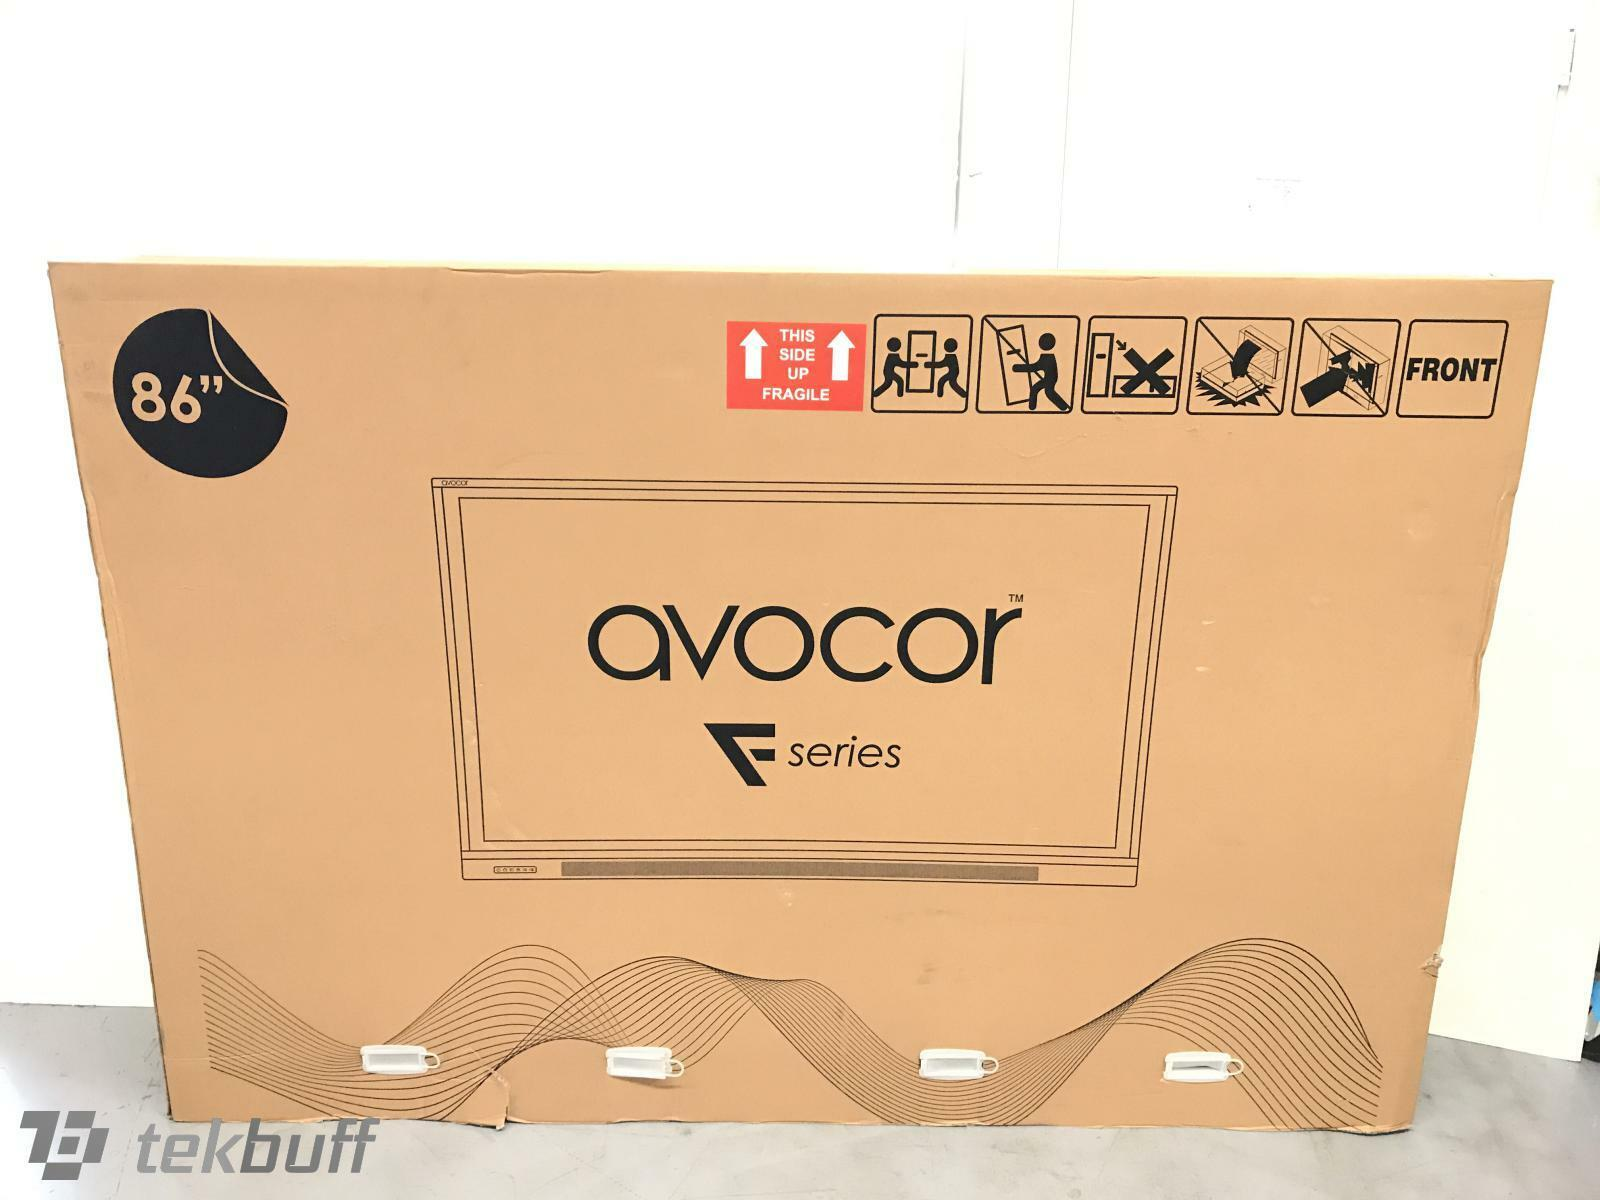 """Avocor F50-Series AVF-8650 86"""" 4K Interactive Touch Display -20-Point Touch 60Hz"""